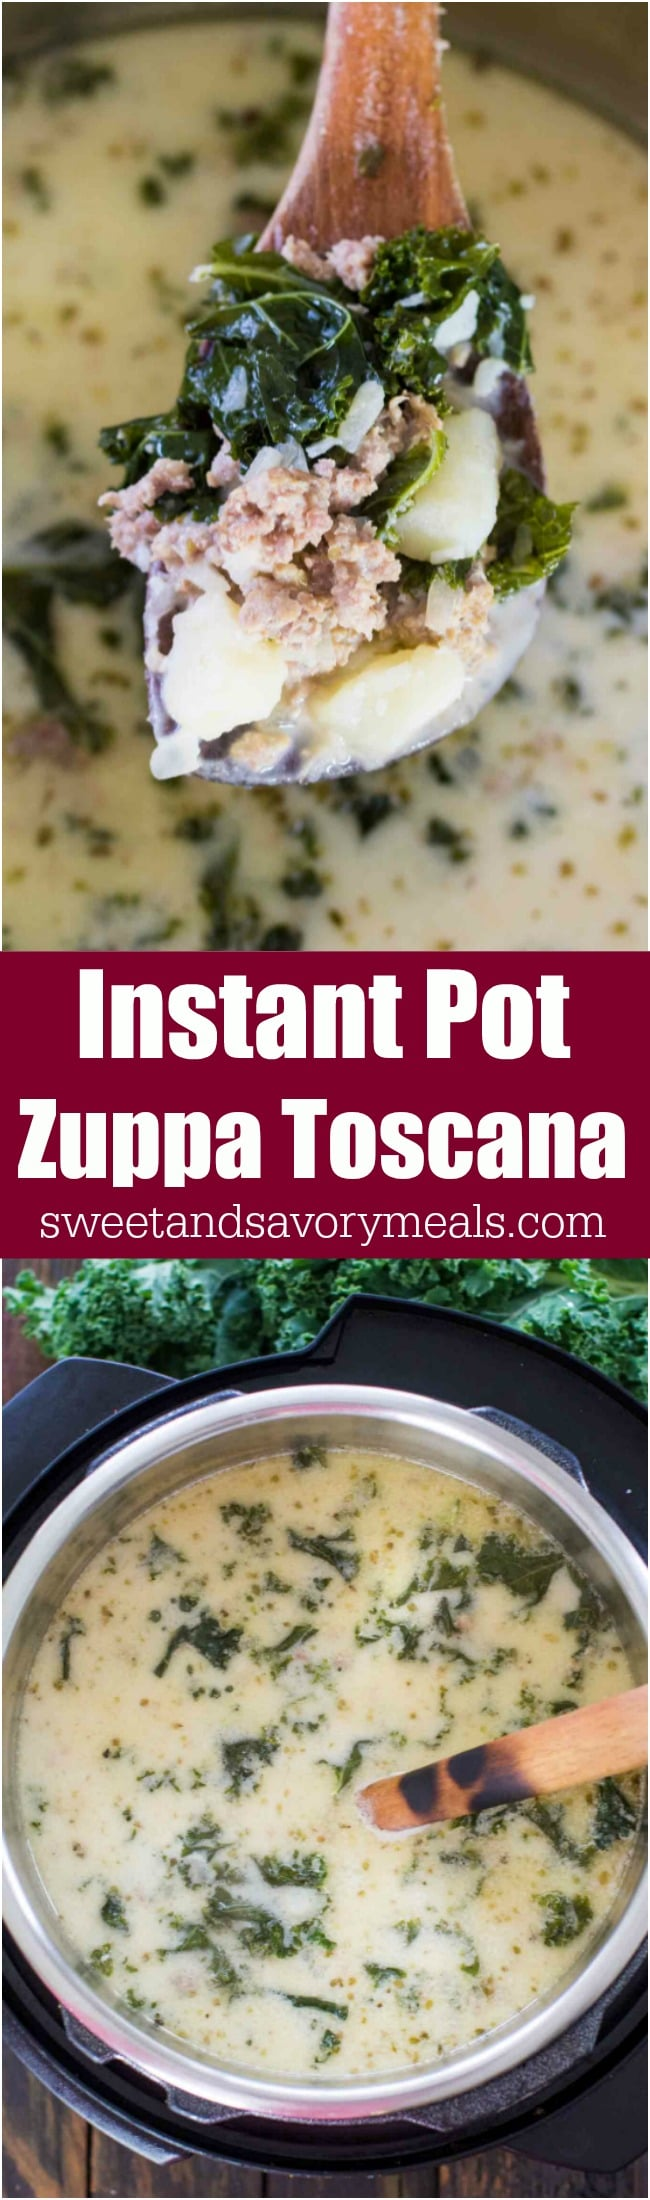 Instant Pot Zuppa Toscana is the Olive Garden Copycat easily made in the Instant Pot in just 40 minutes with budget friendly ingredients.